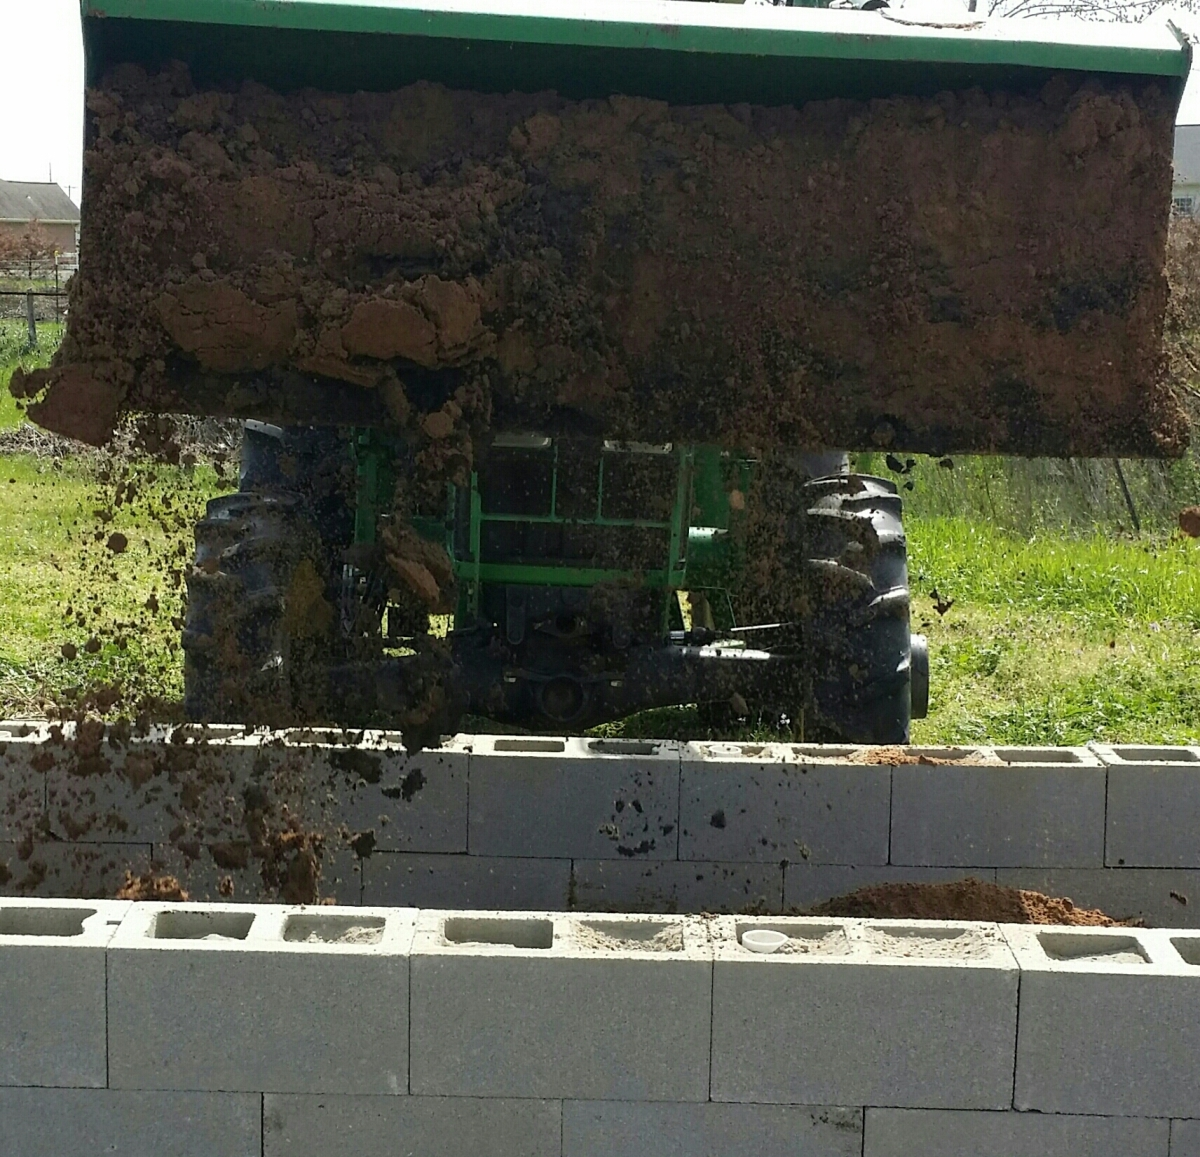 Tractor bucket drops soil into the raised bed.